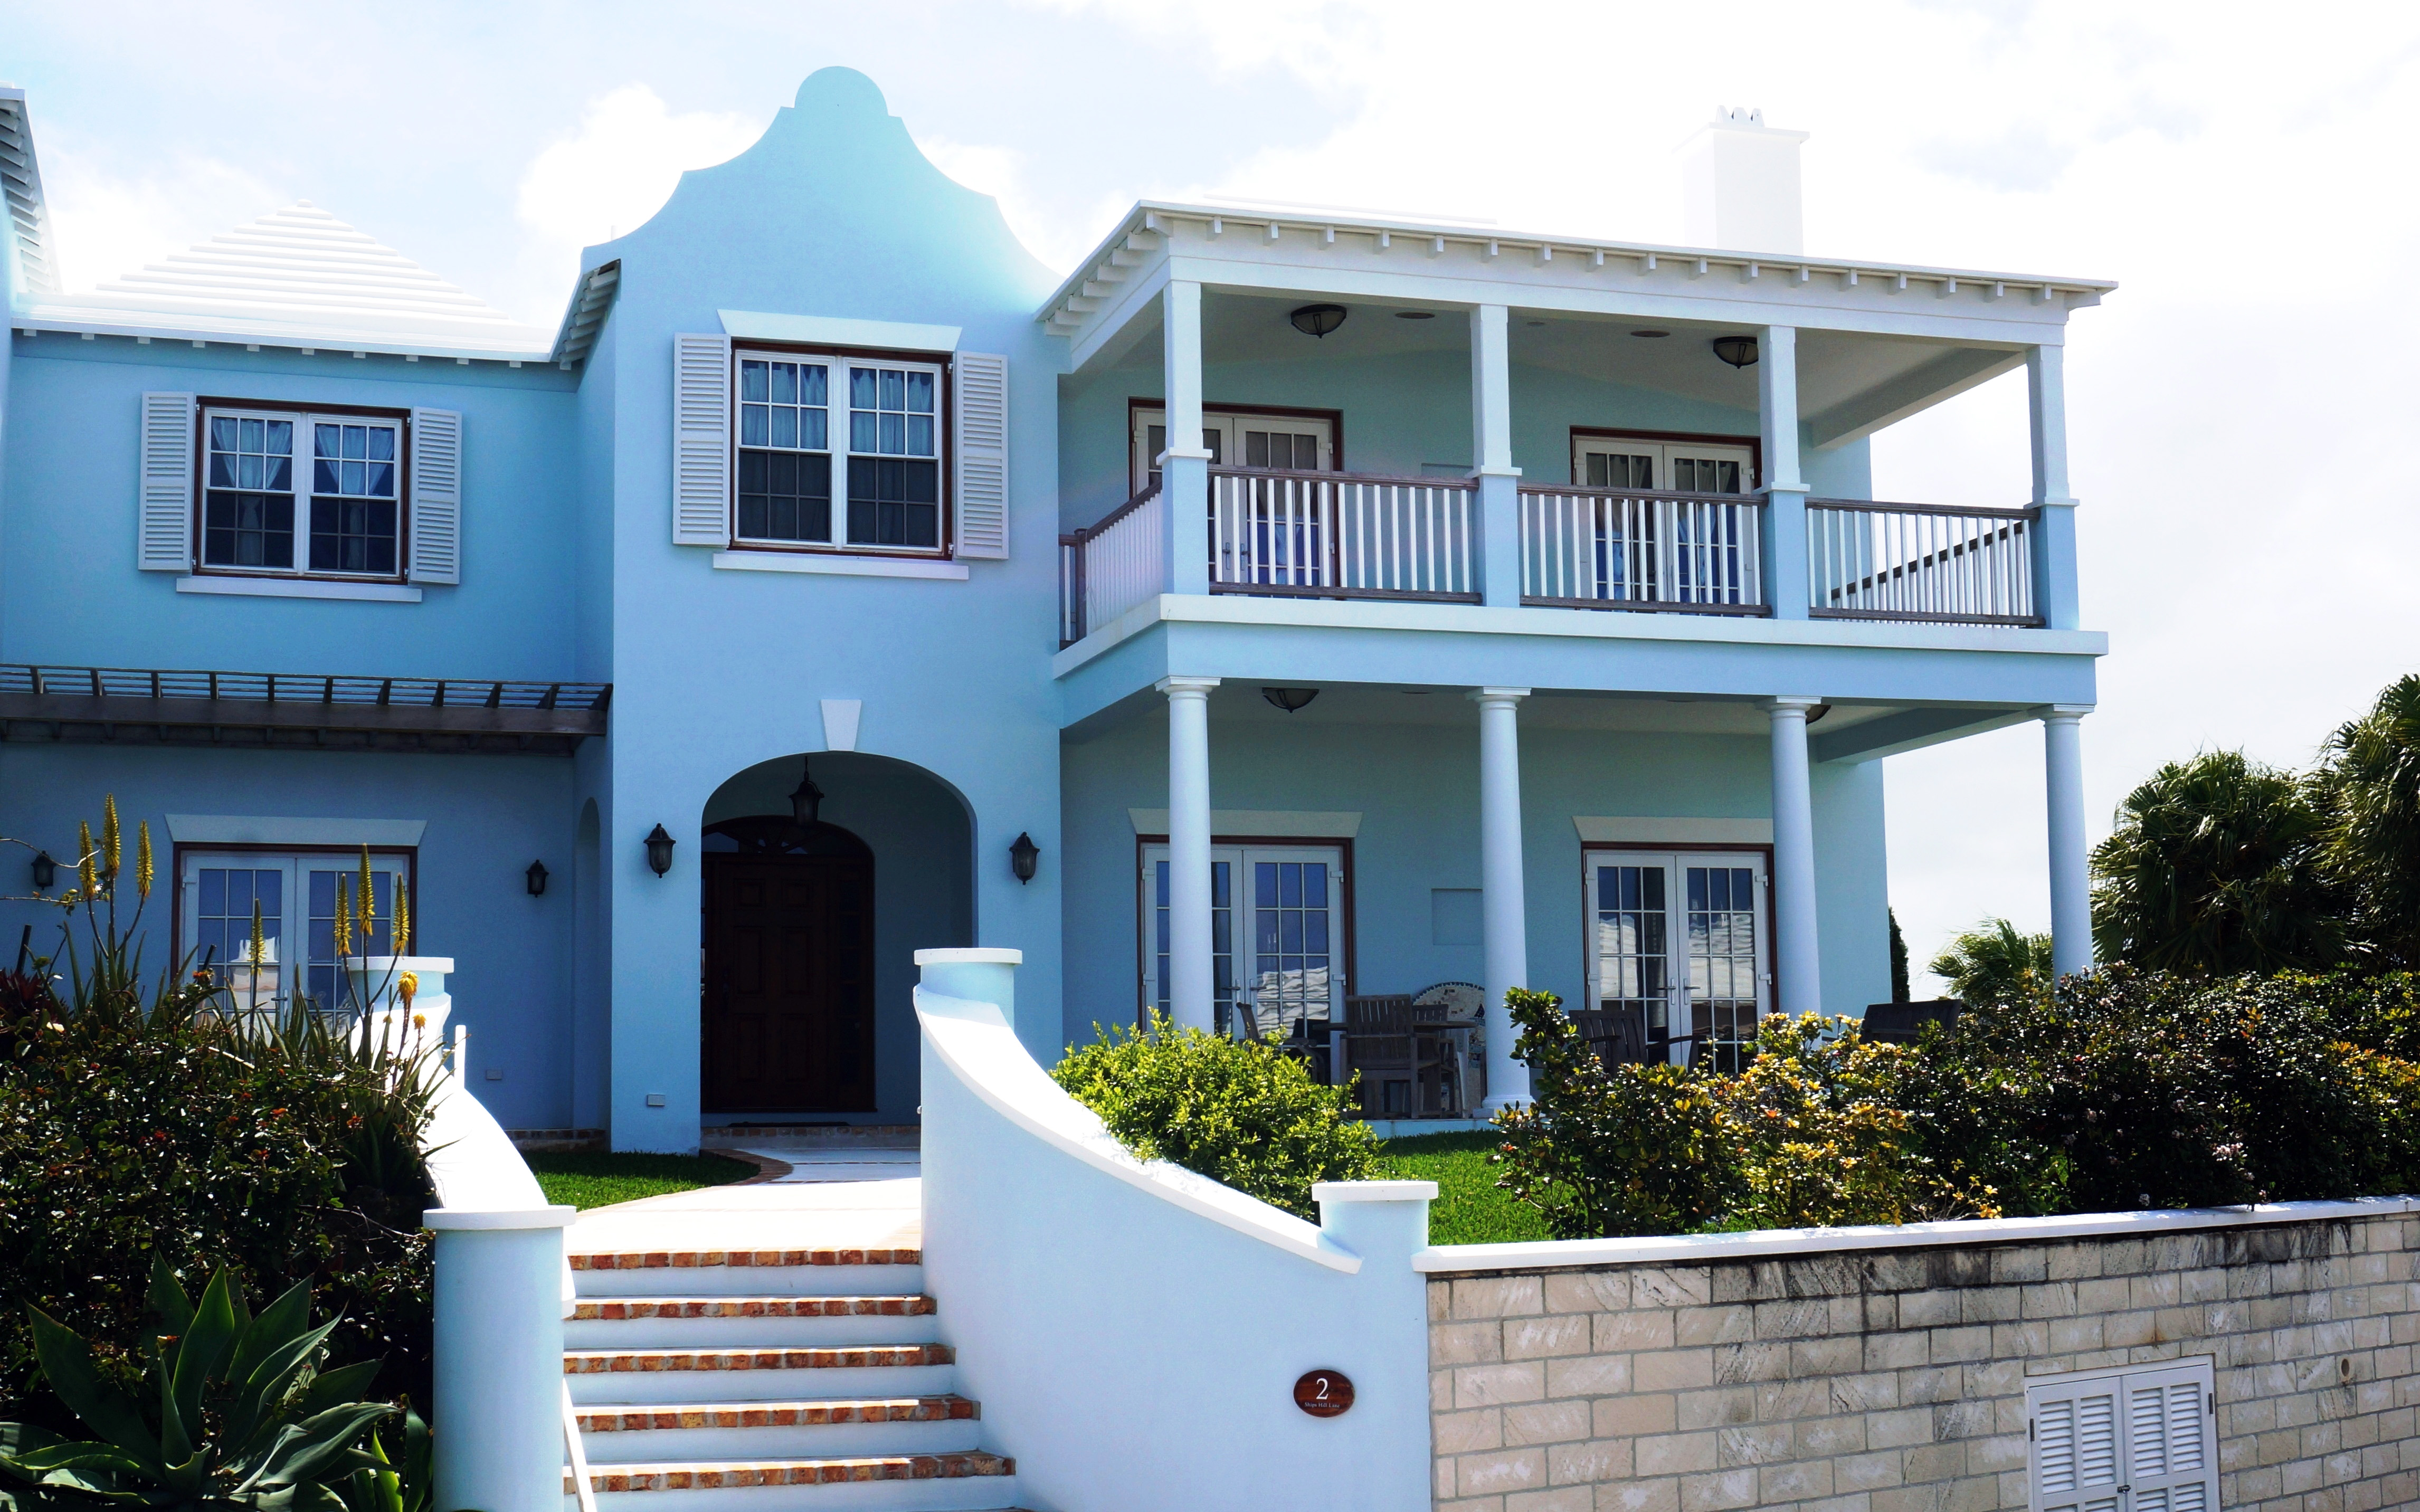 Single Family Home for Sale at Ships Hill 2 2 Ships Hill Lane St Georges Parish, HS02 Bermuda